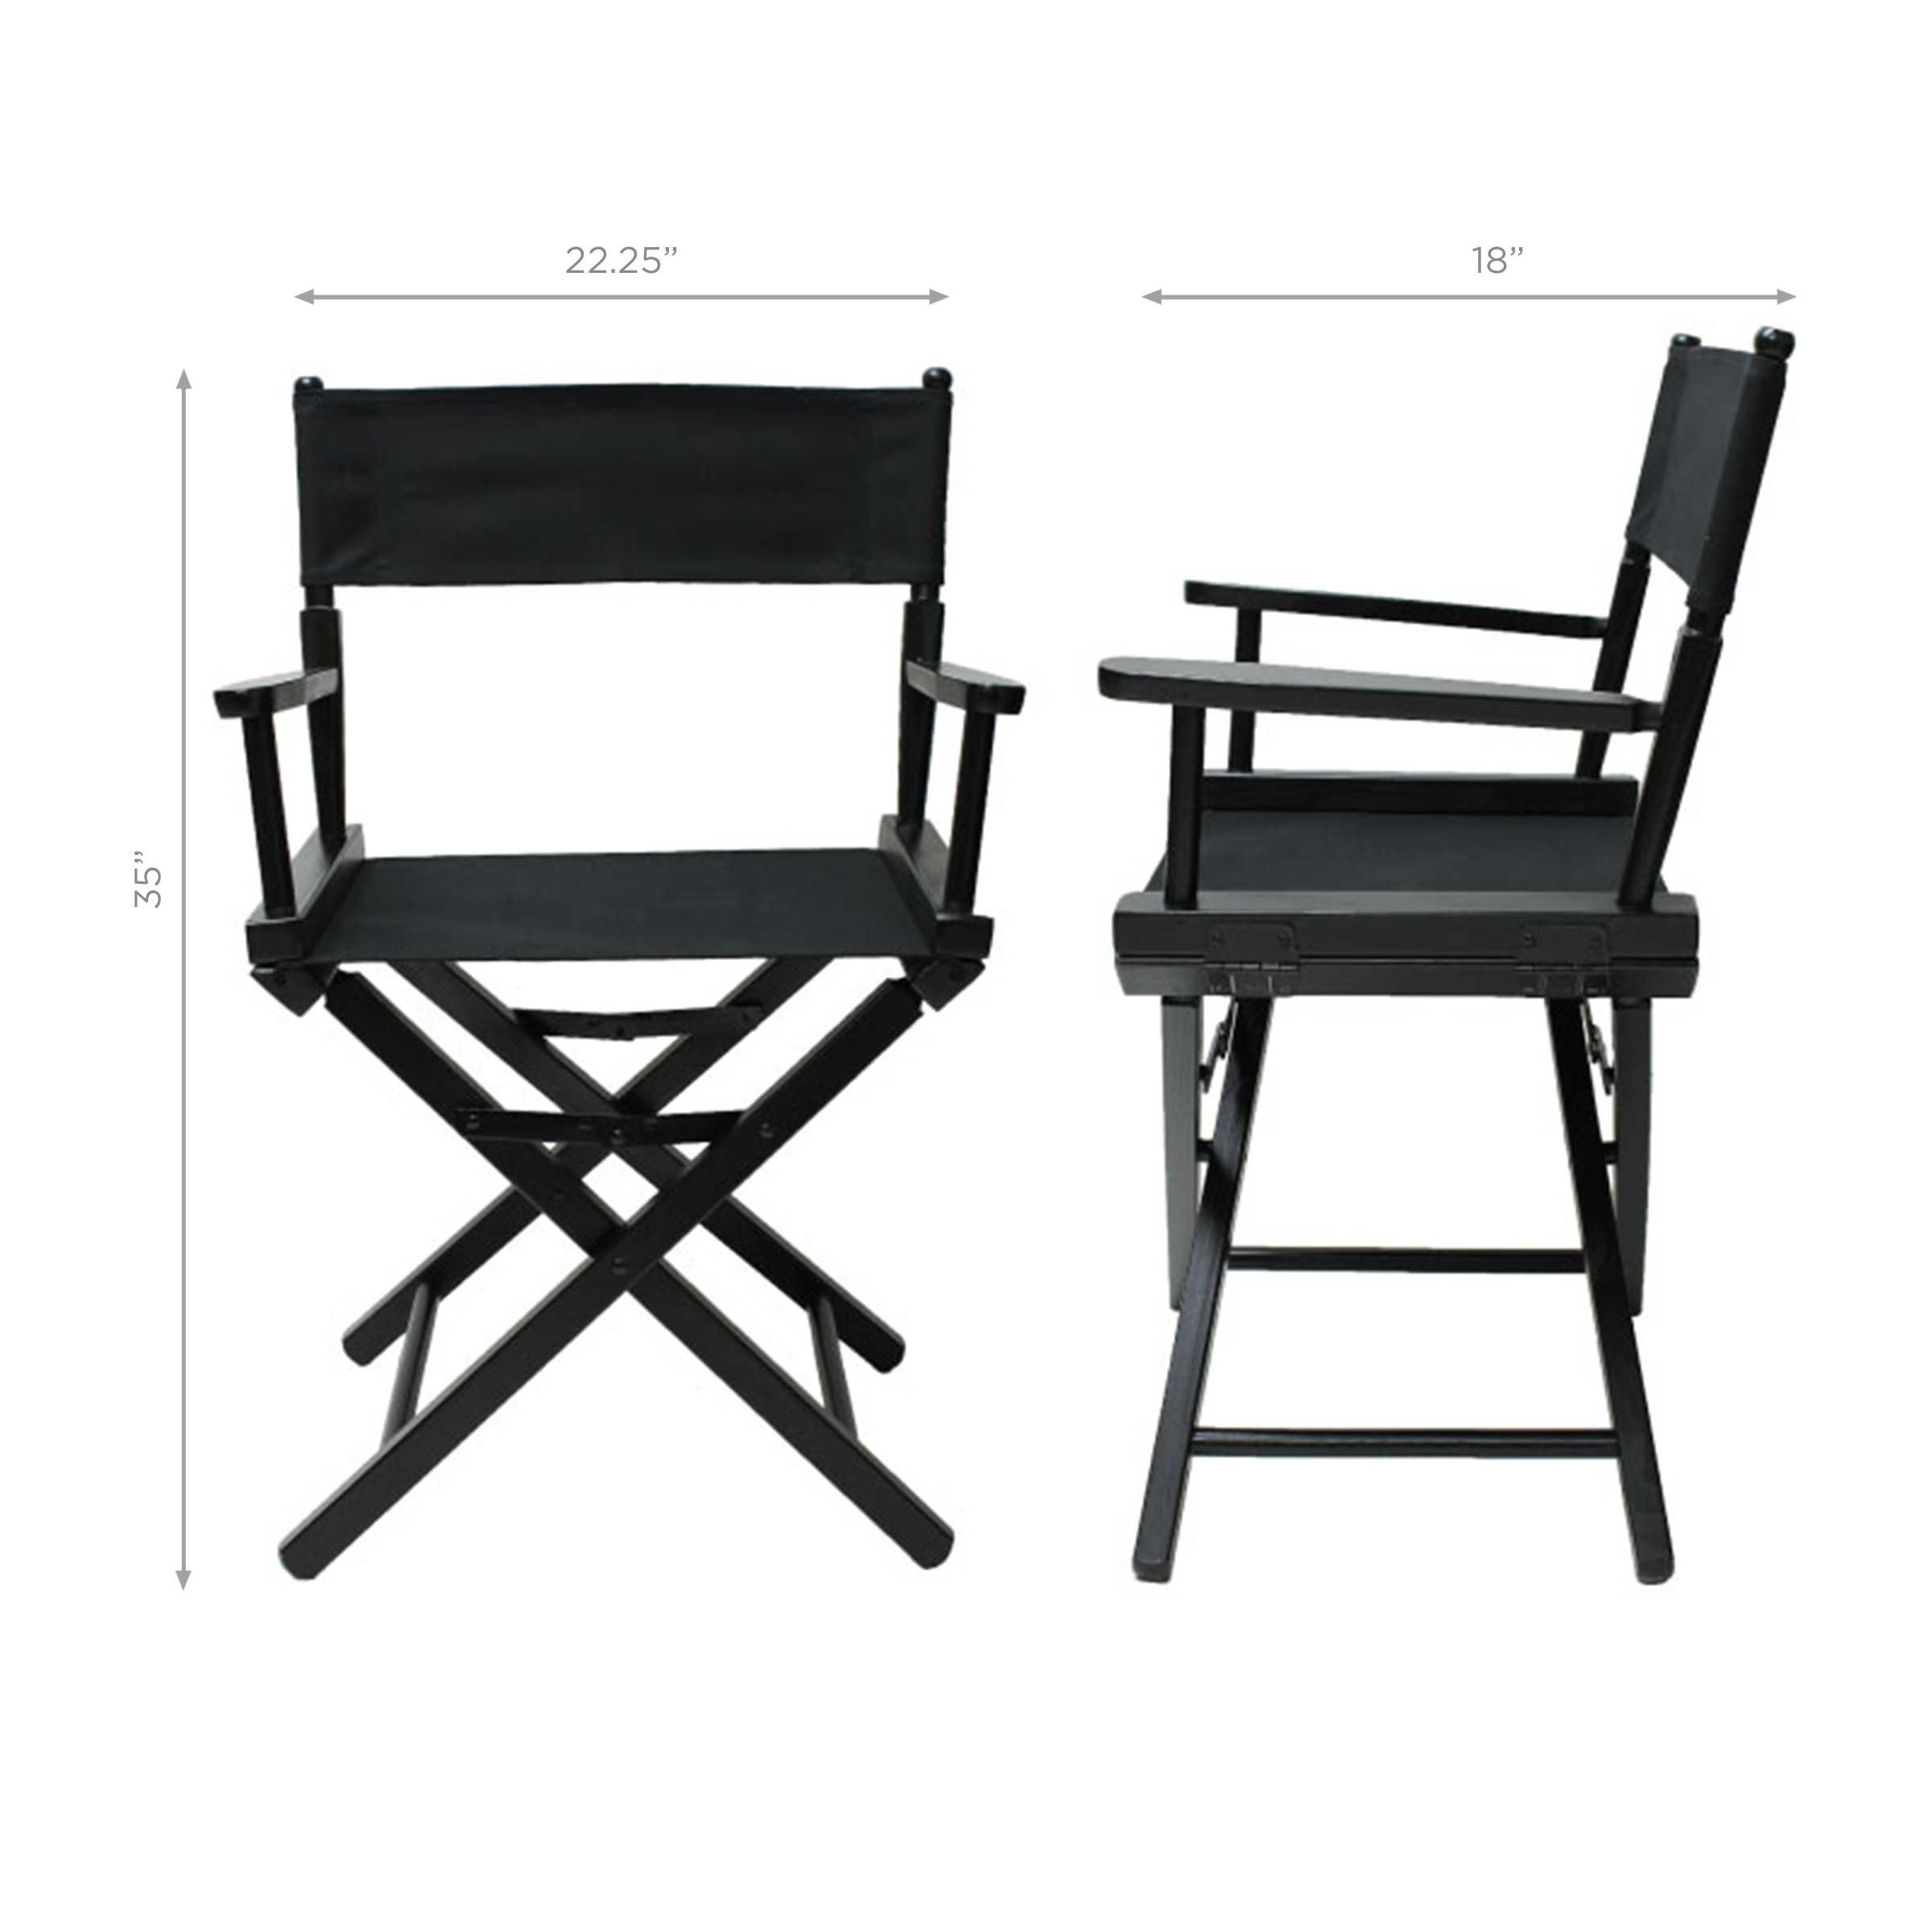 FLORIDA A&M DIRECTORS CHAIR-TABLE HEIGHT